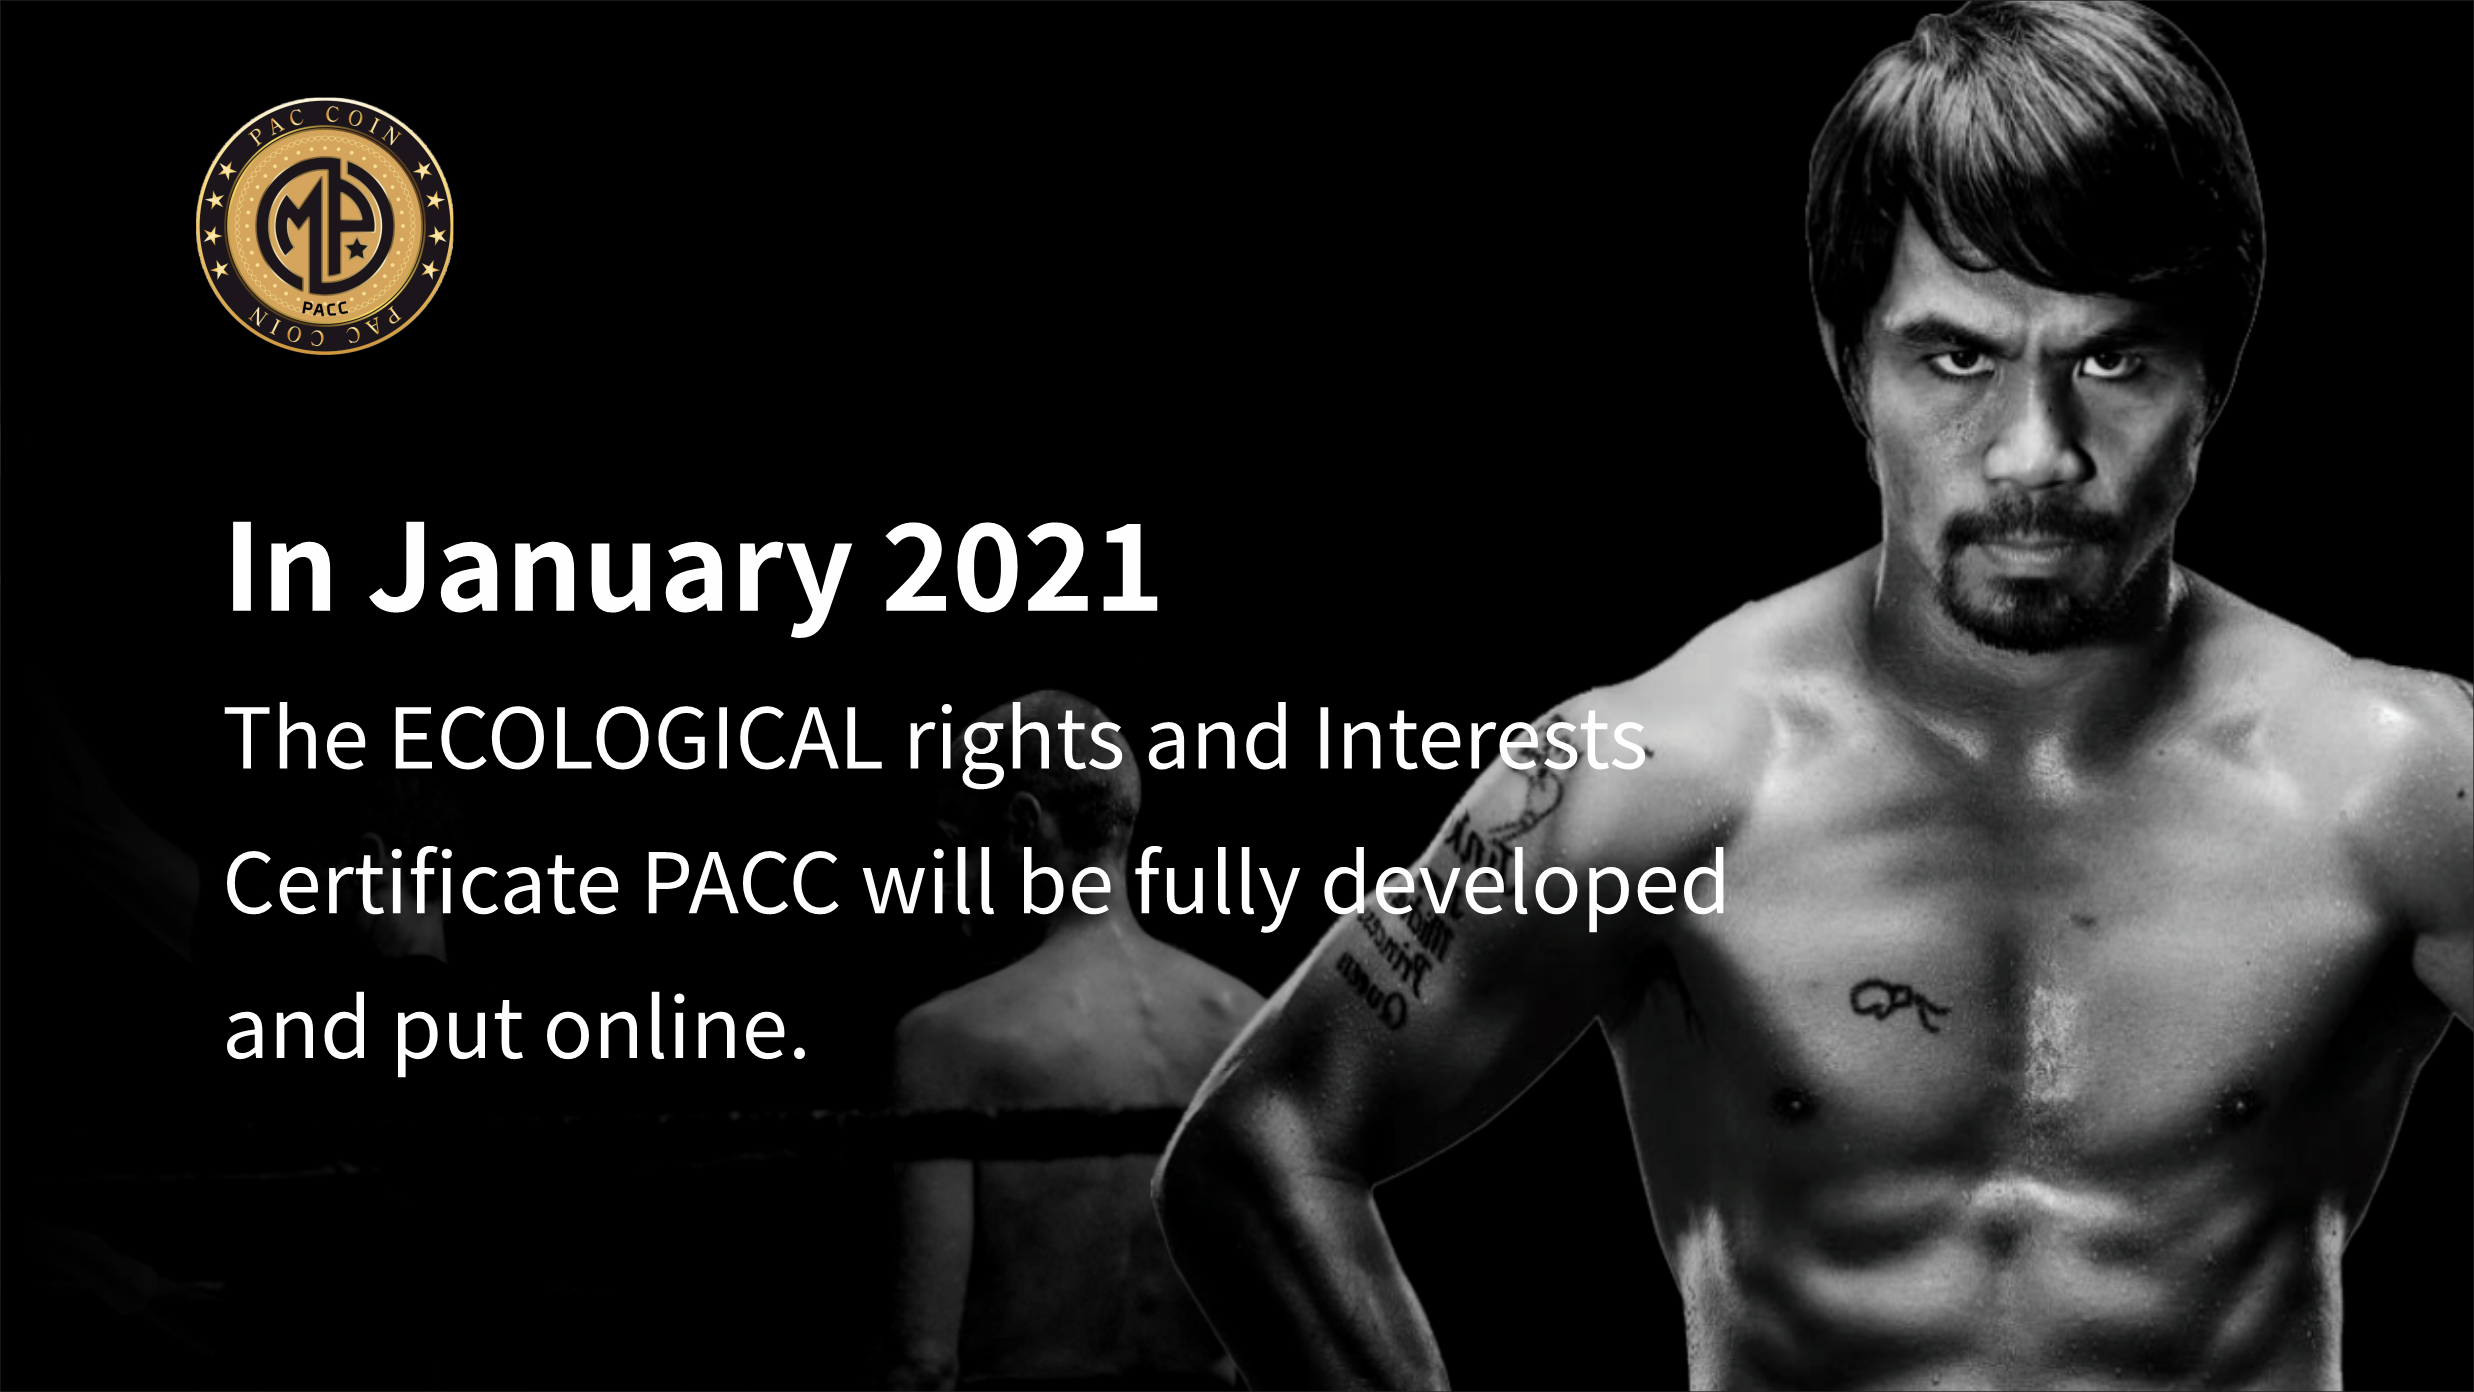 Pacquiao:The birth of PACC will make great history